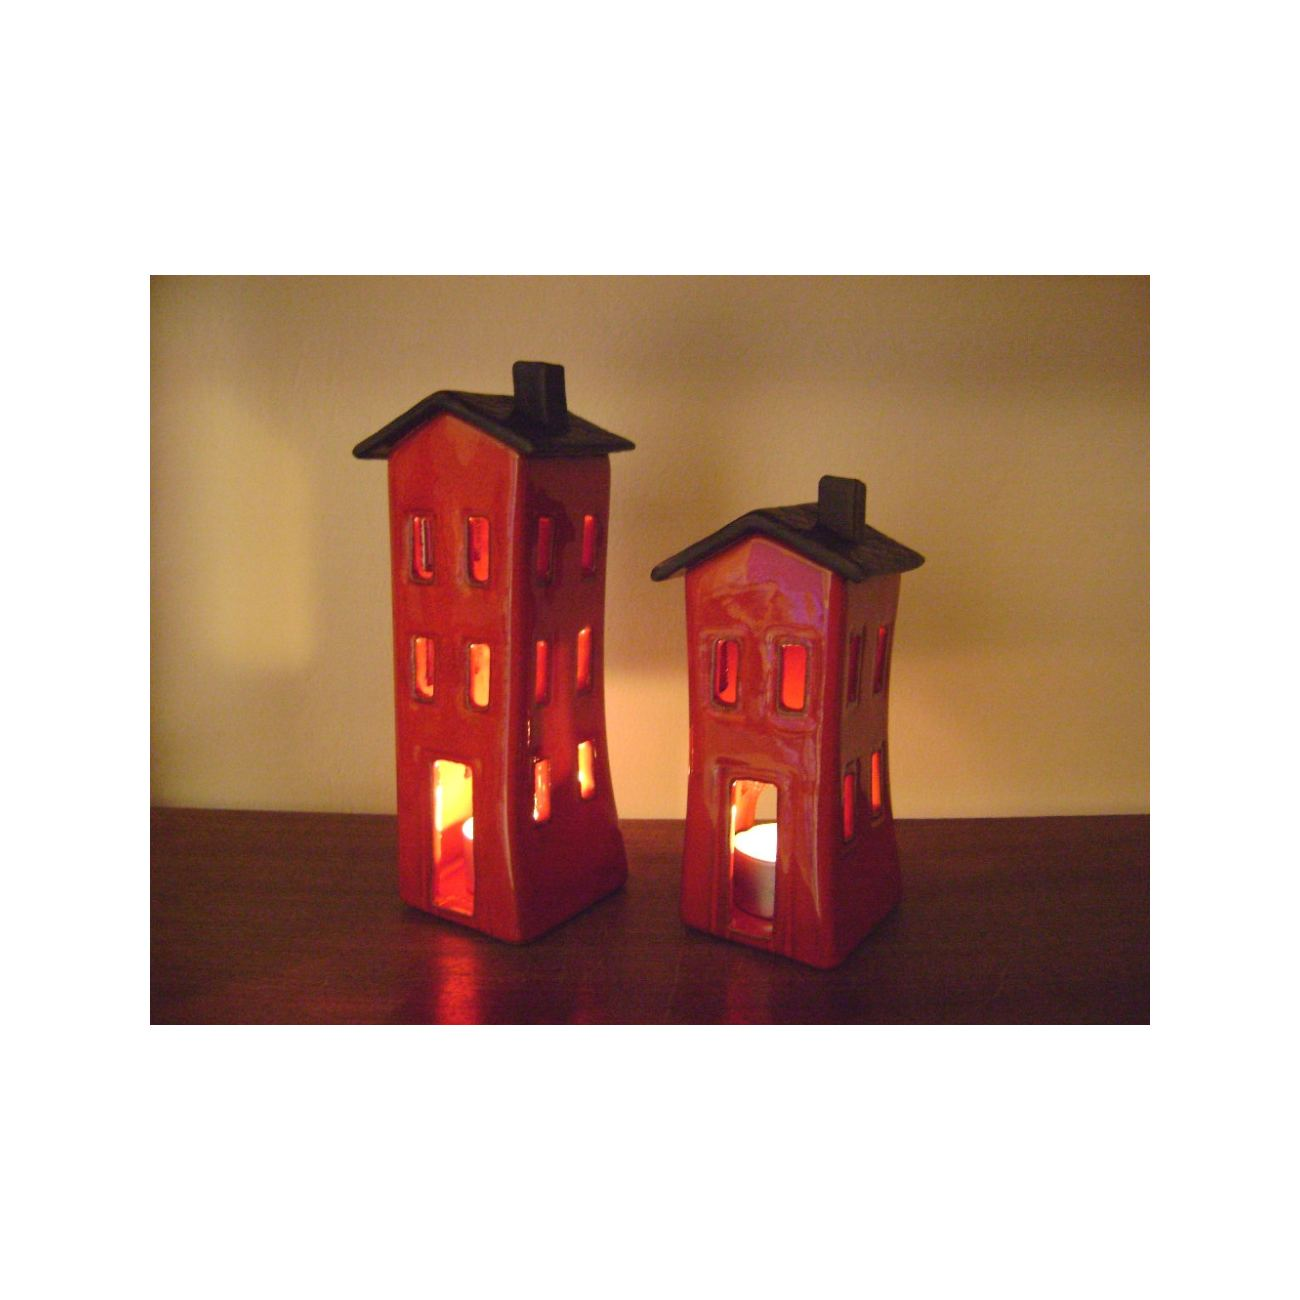 Red Candle Lantern House Design Modern Handmade Ceramic Large